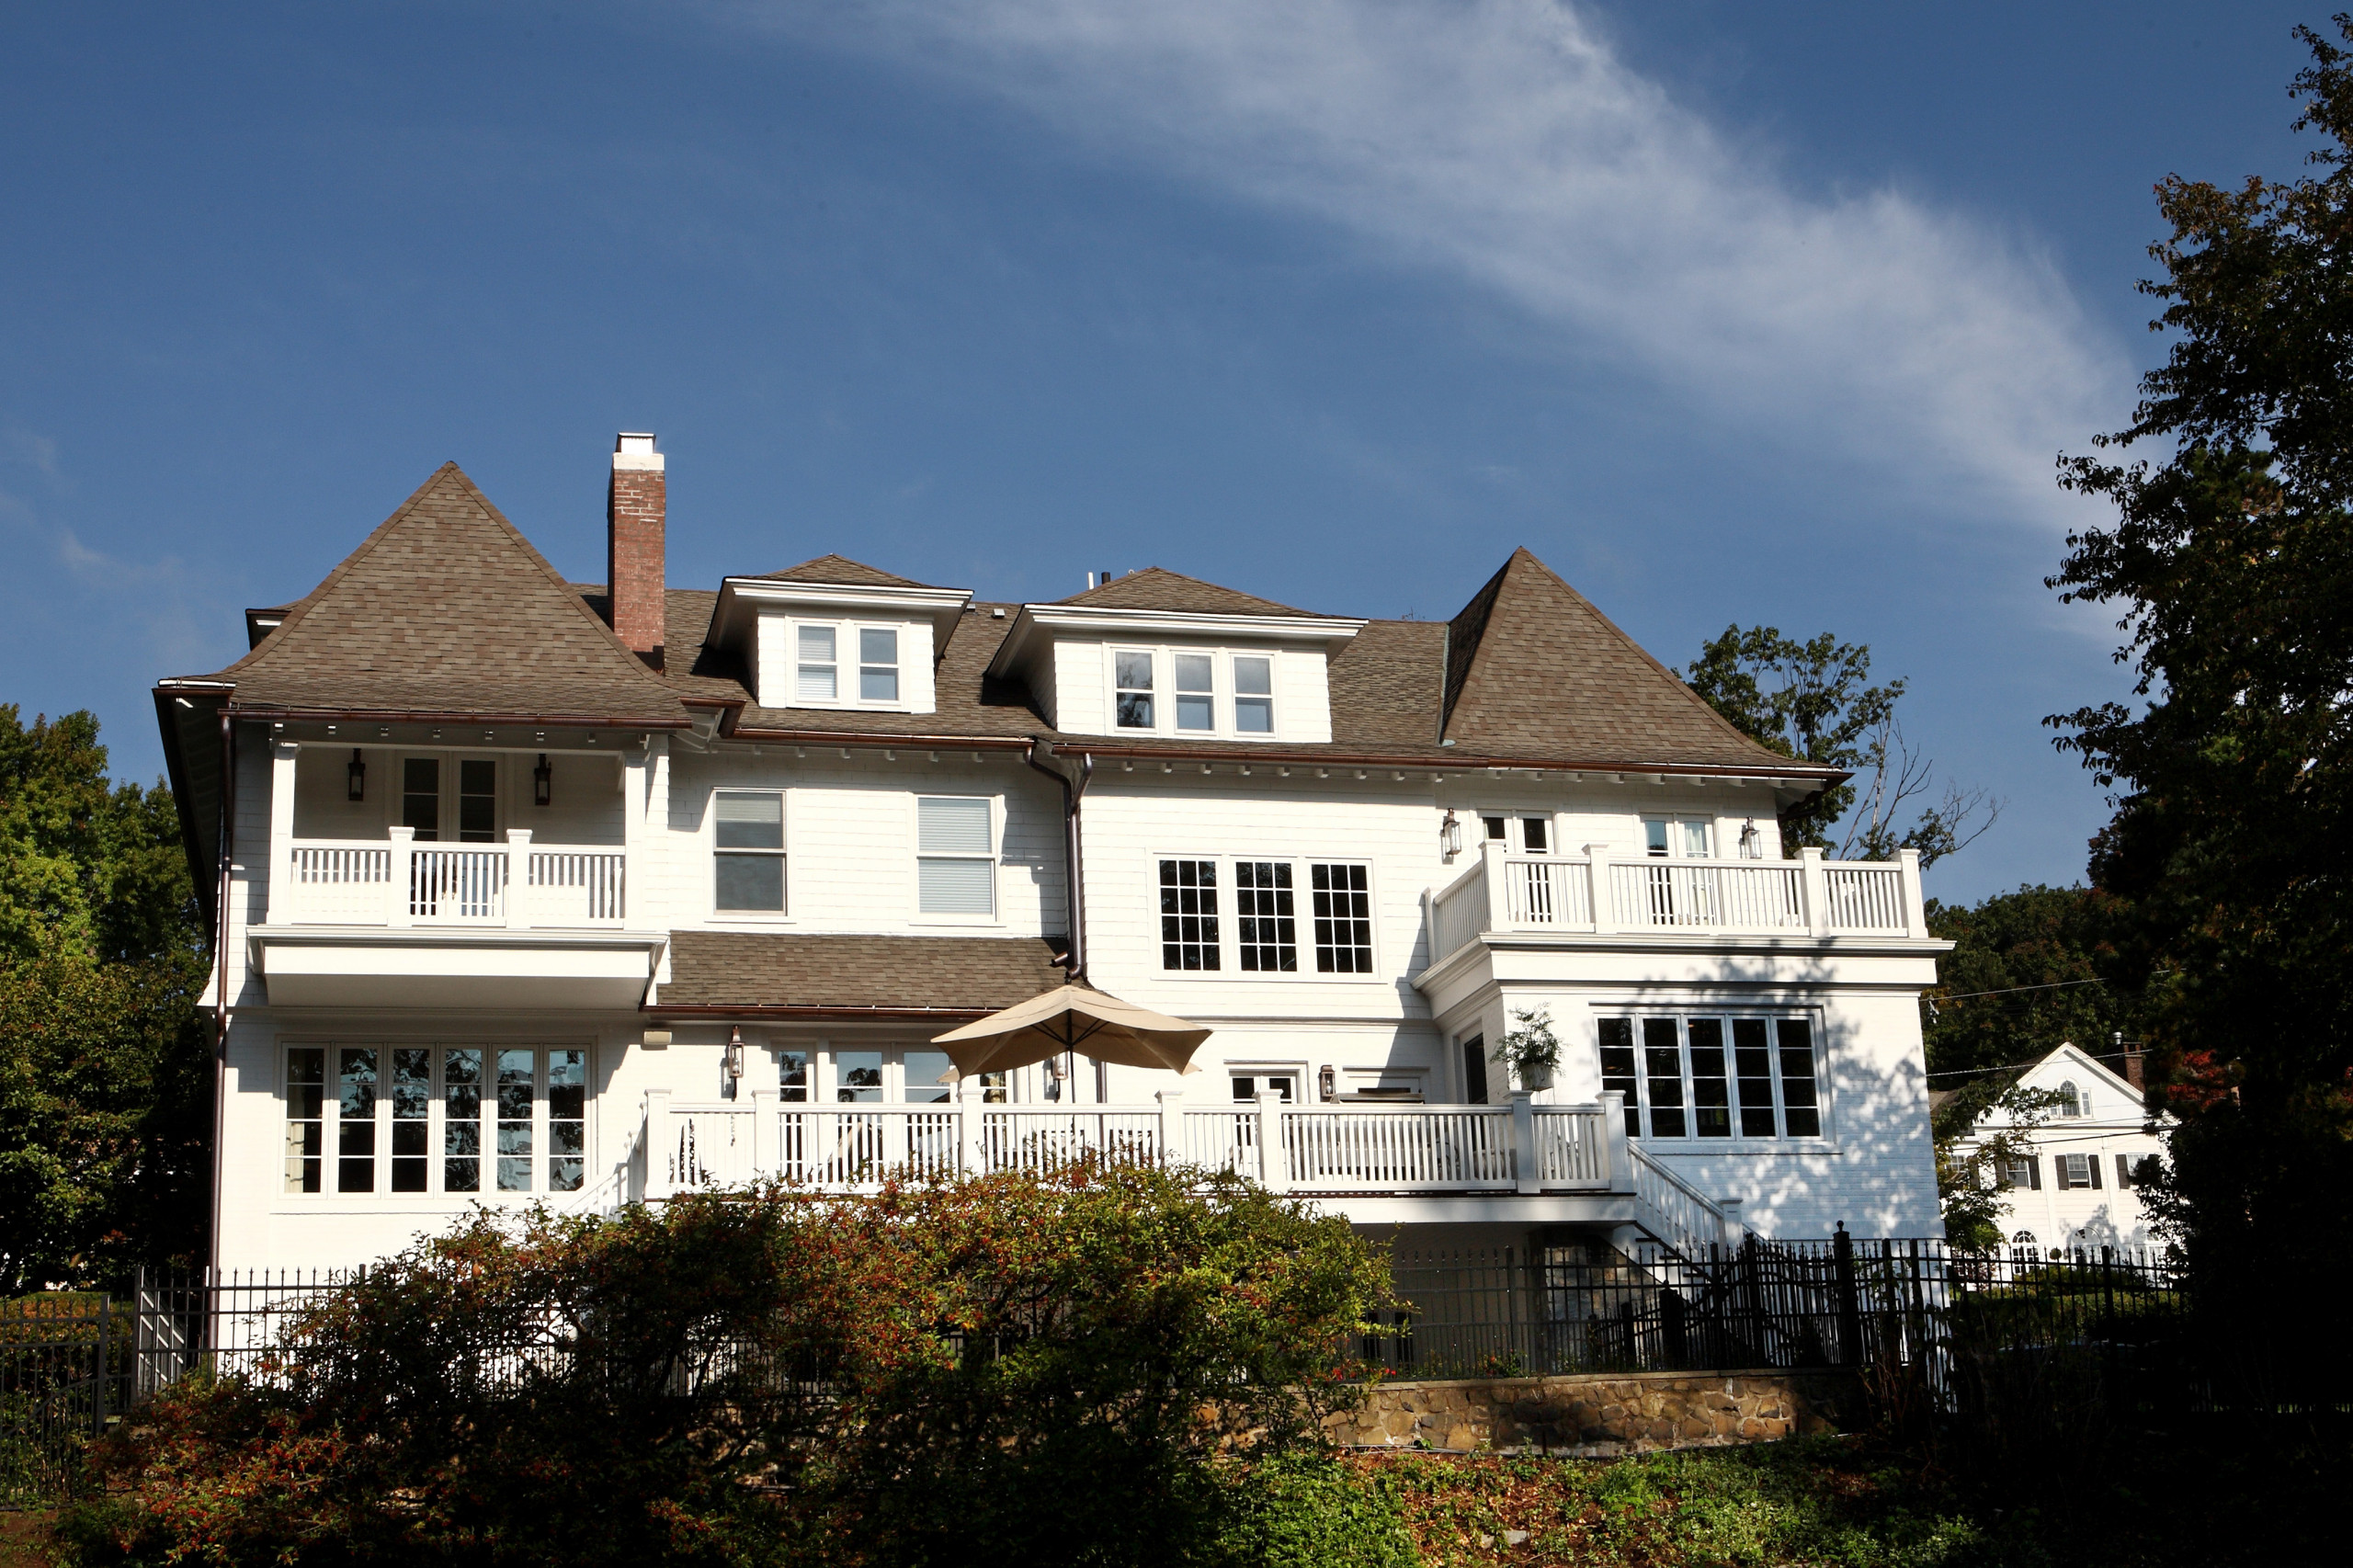 HISTORIC HOME ON THE HILL